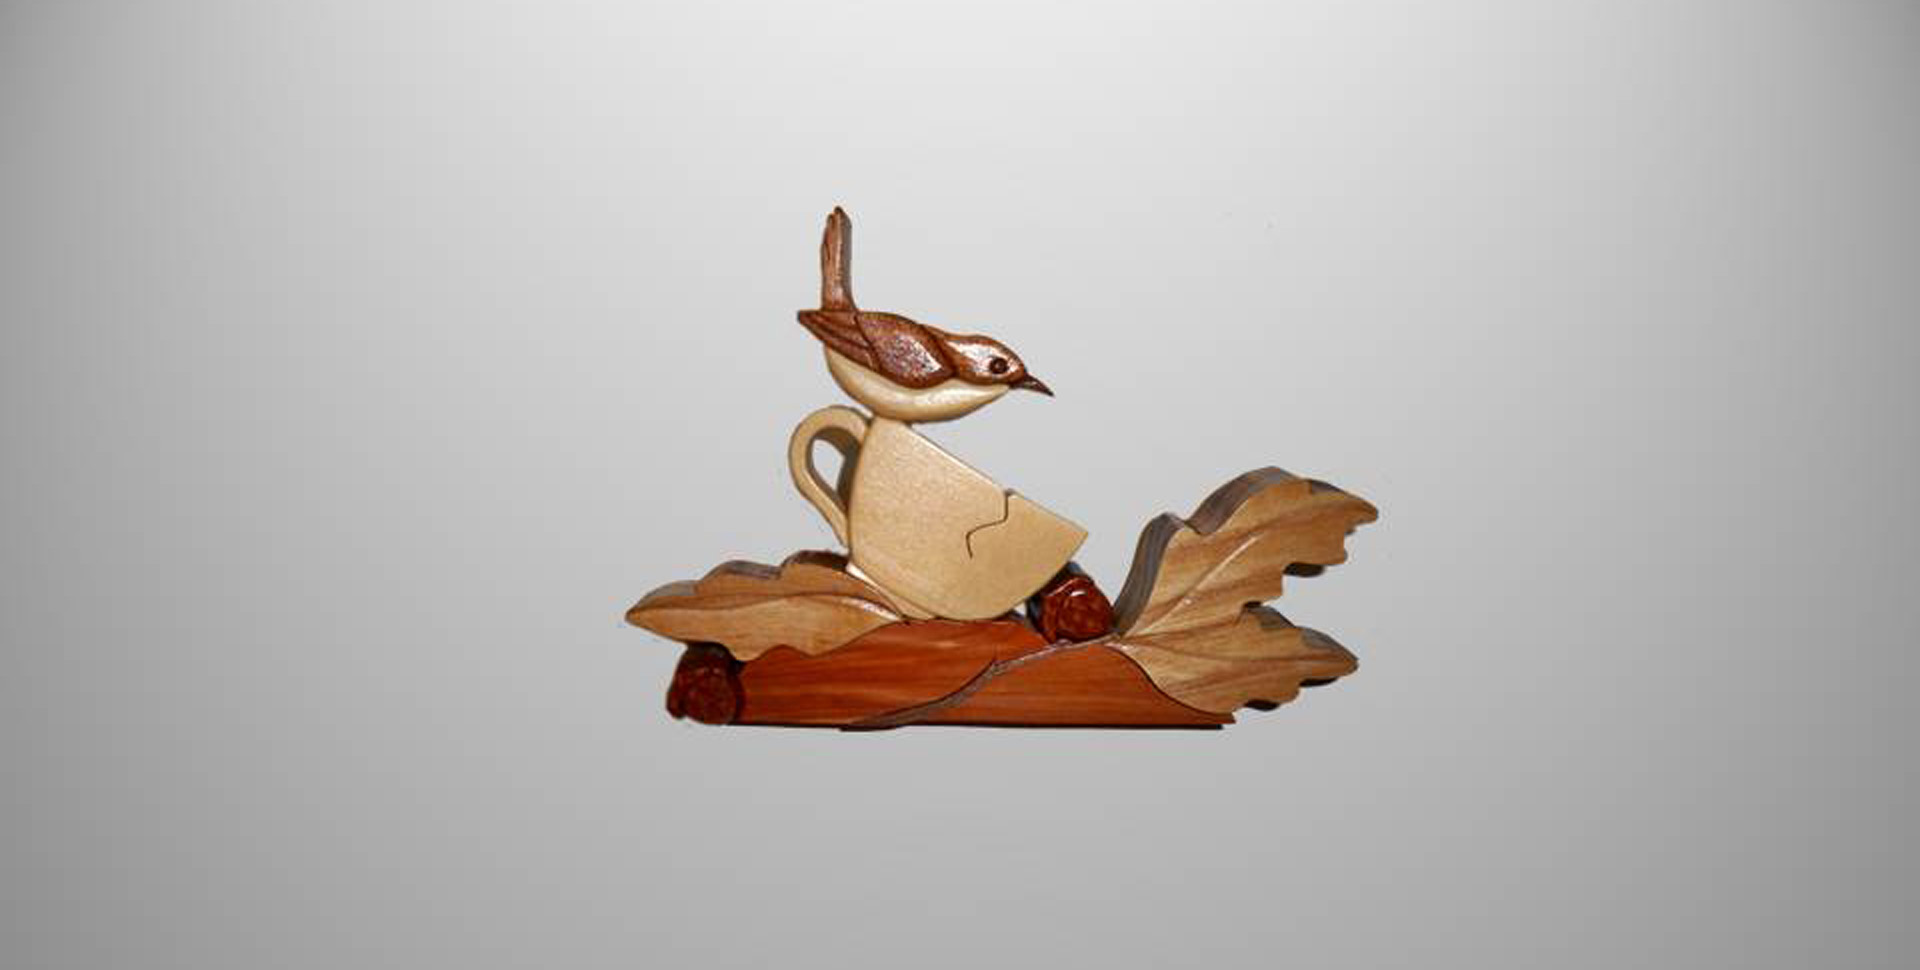 Instarsia Wood Craft for Auction! Wren in a Tea Cup